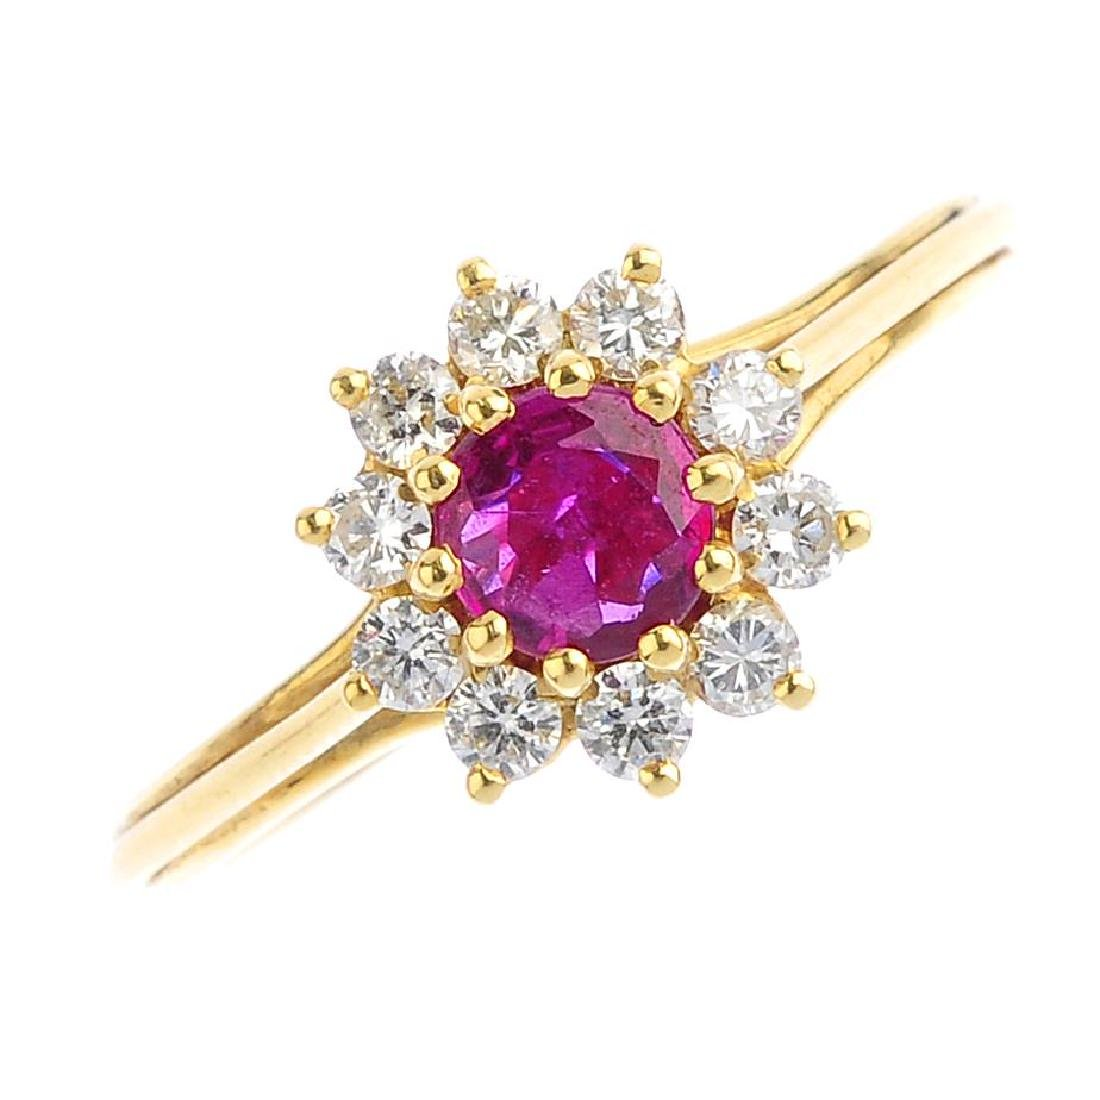 A ruby and diamond cluster ring. The circular-shape